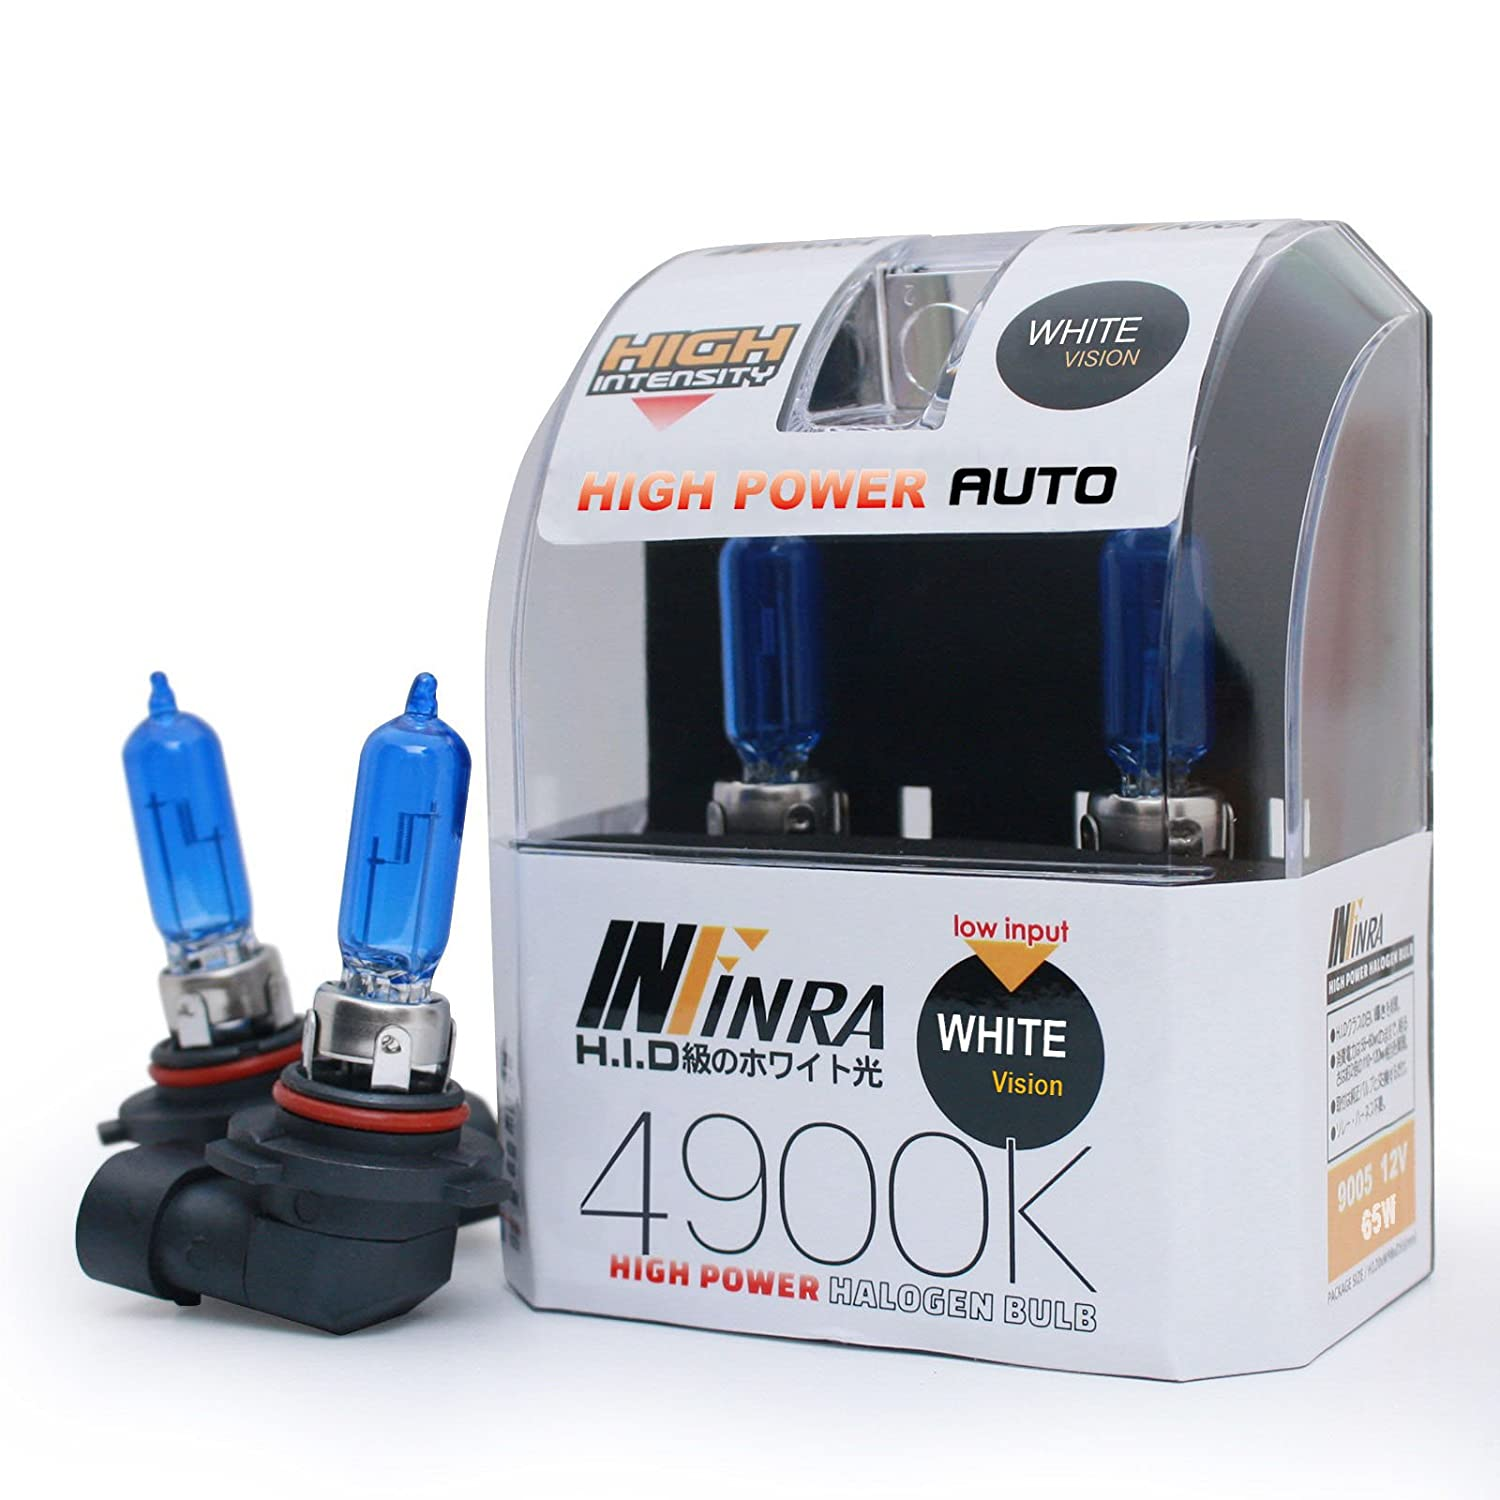 Infinra 9005 65W 4900K White Xenon Halogen Headlight Bulbs (Pack of 2)